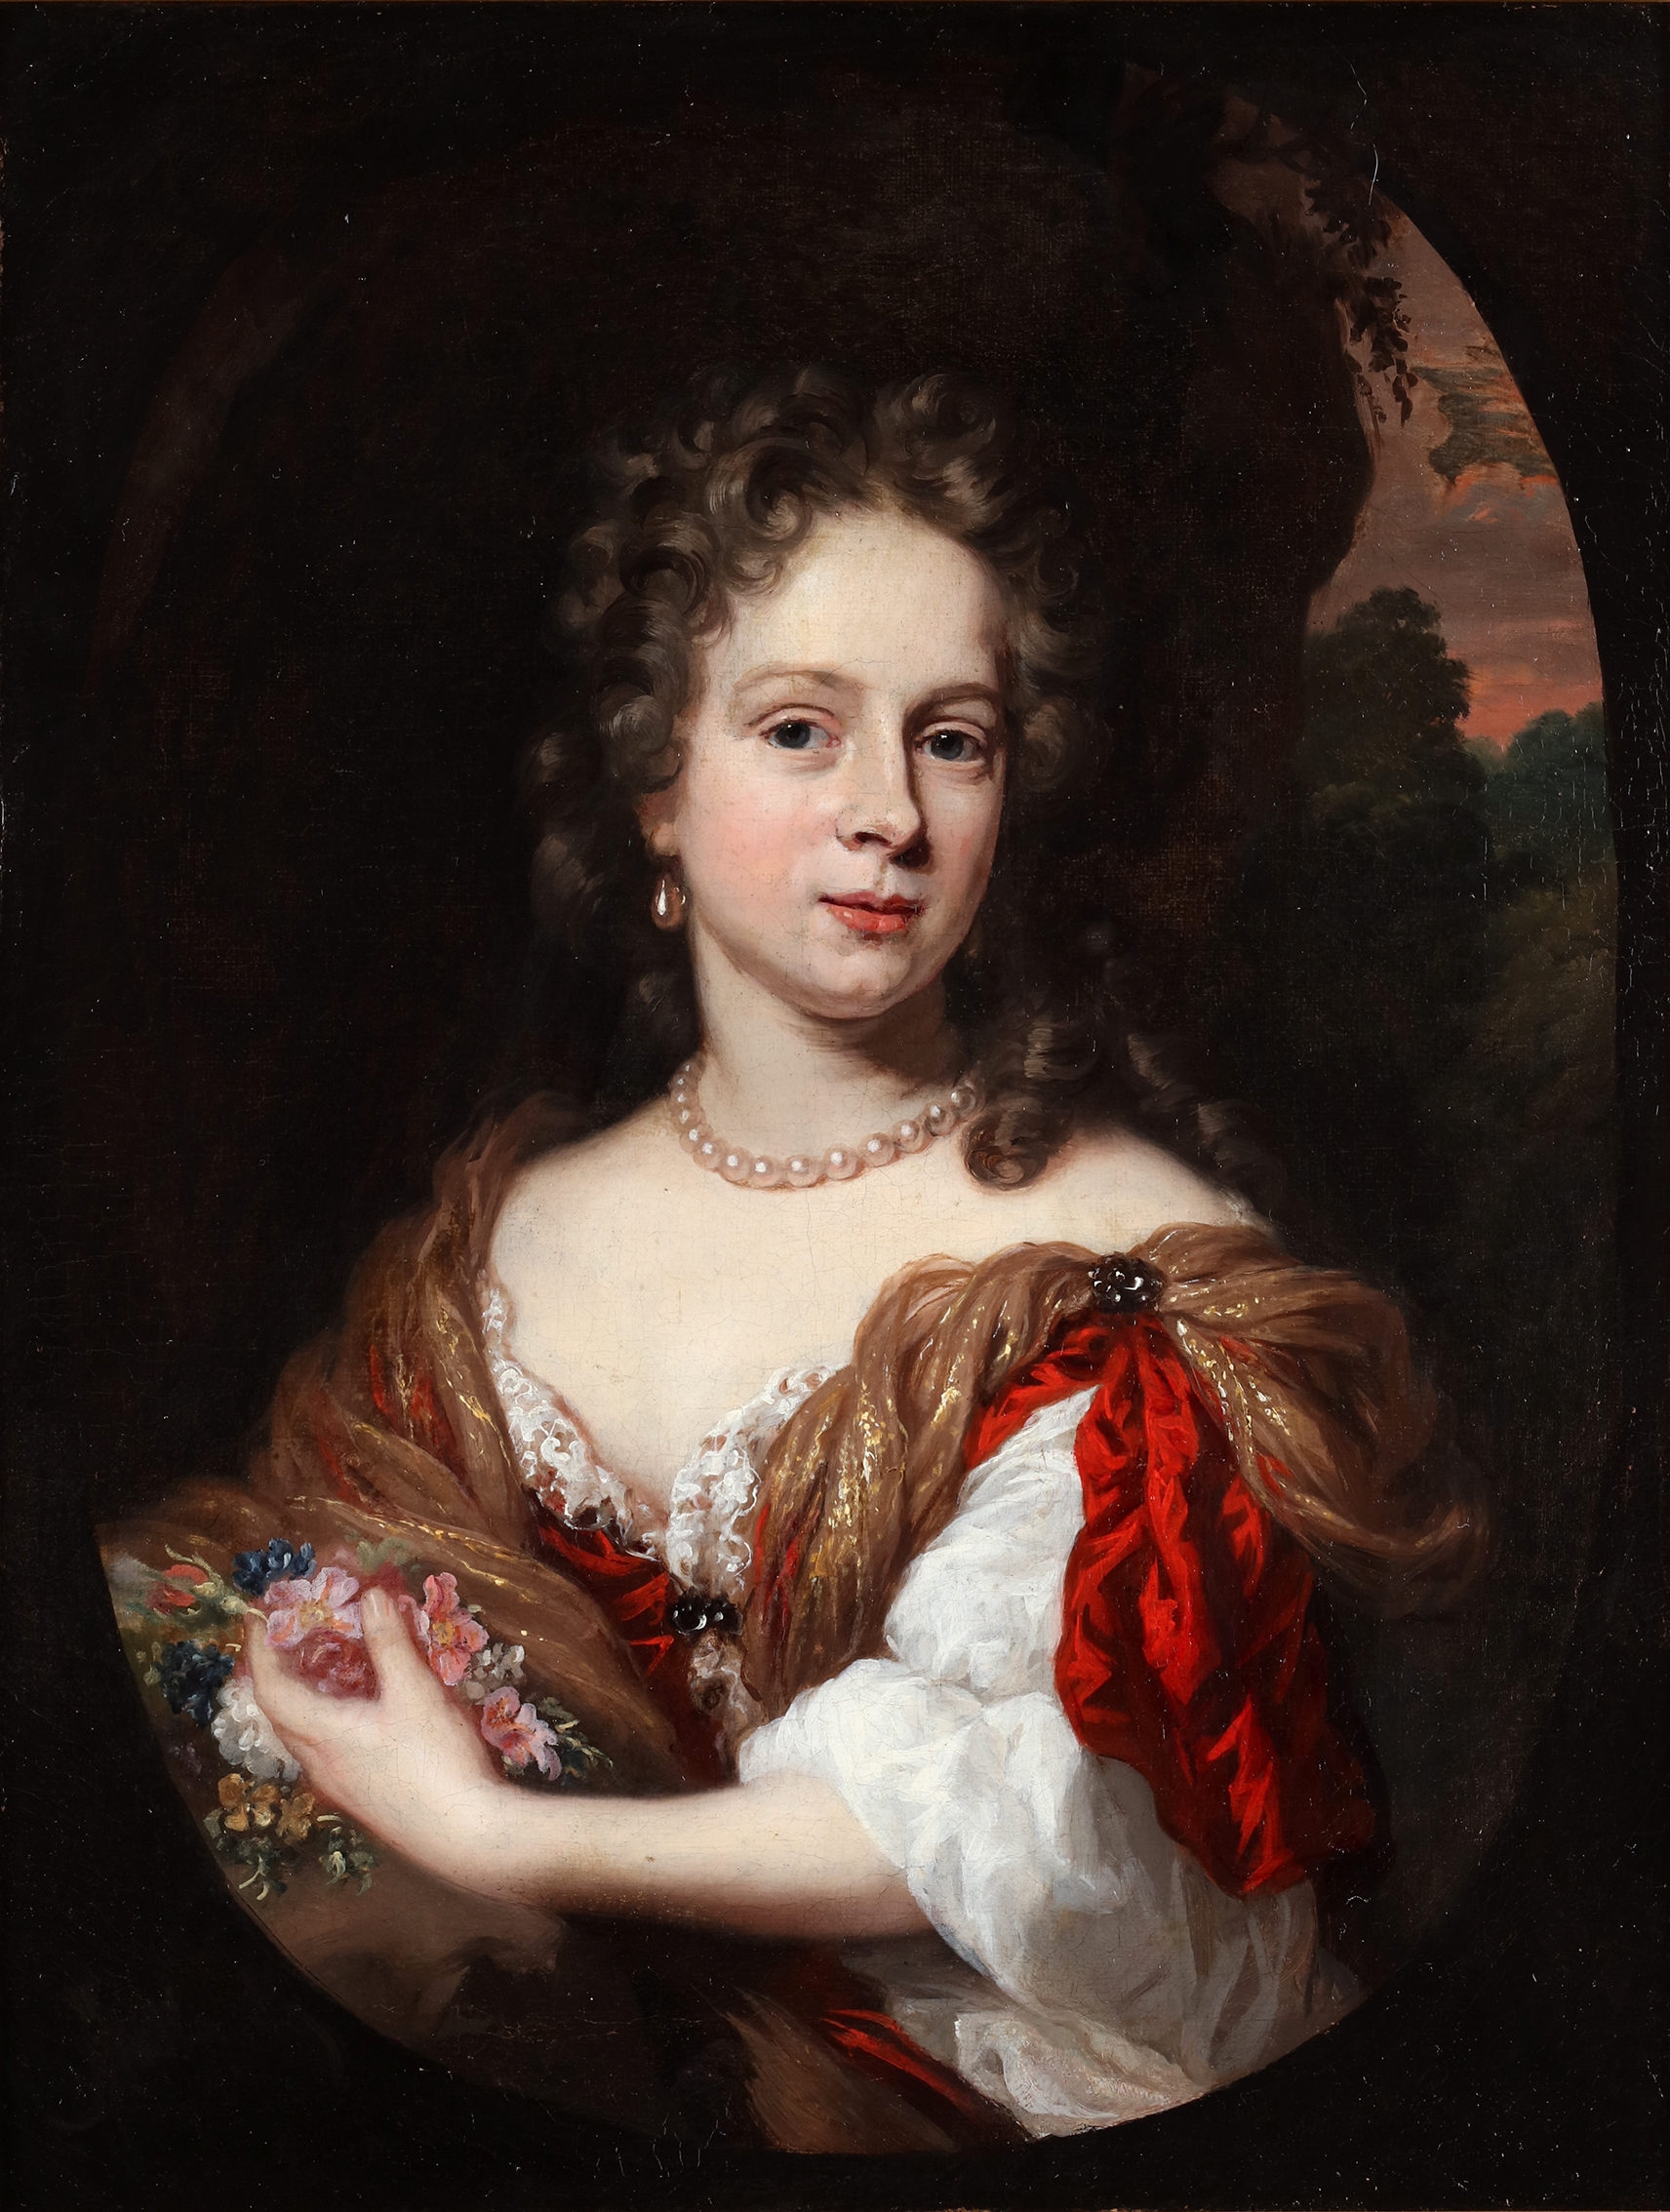 Portrait of a young lady holding flowers